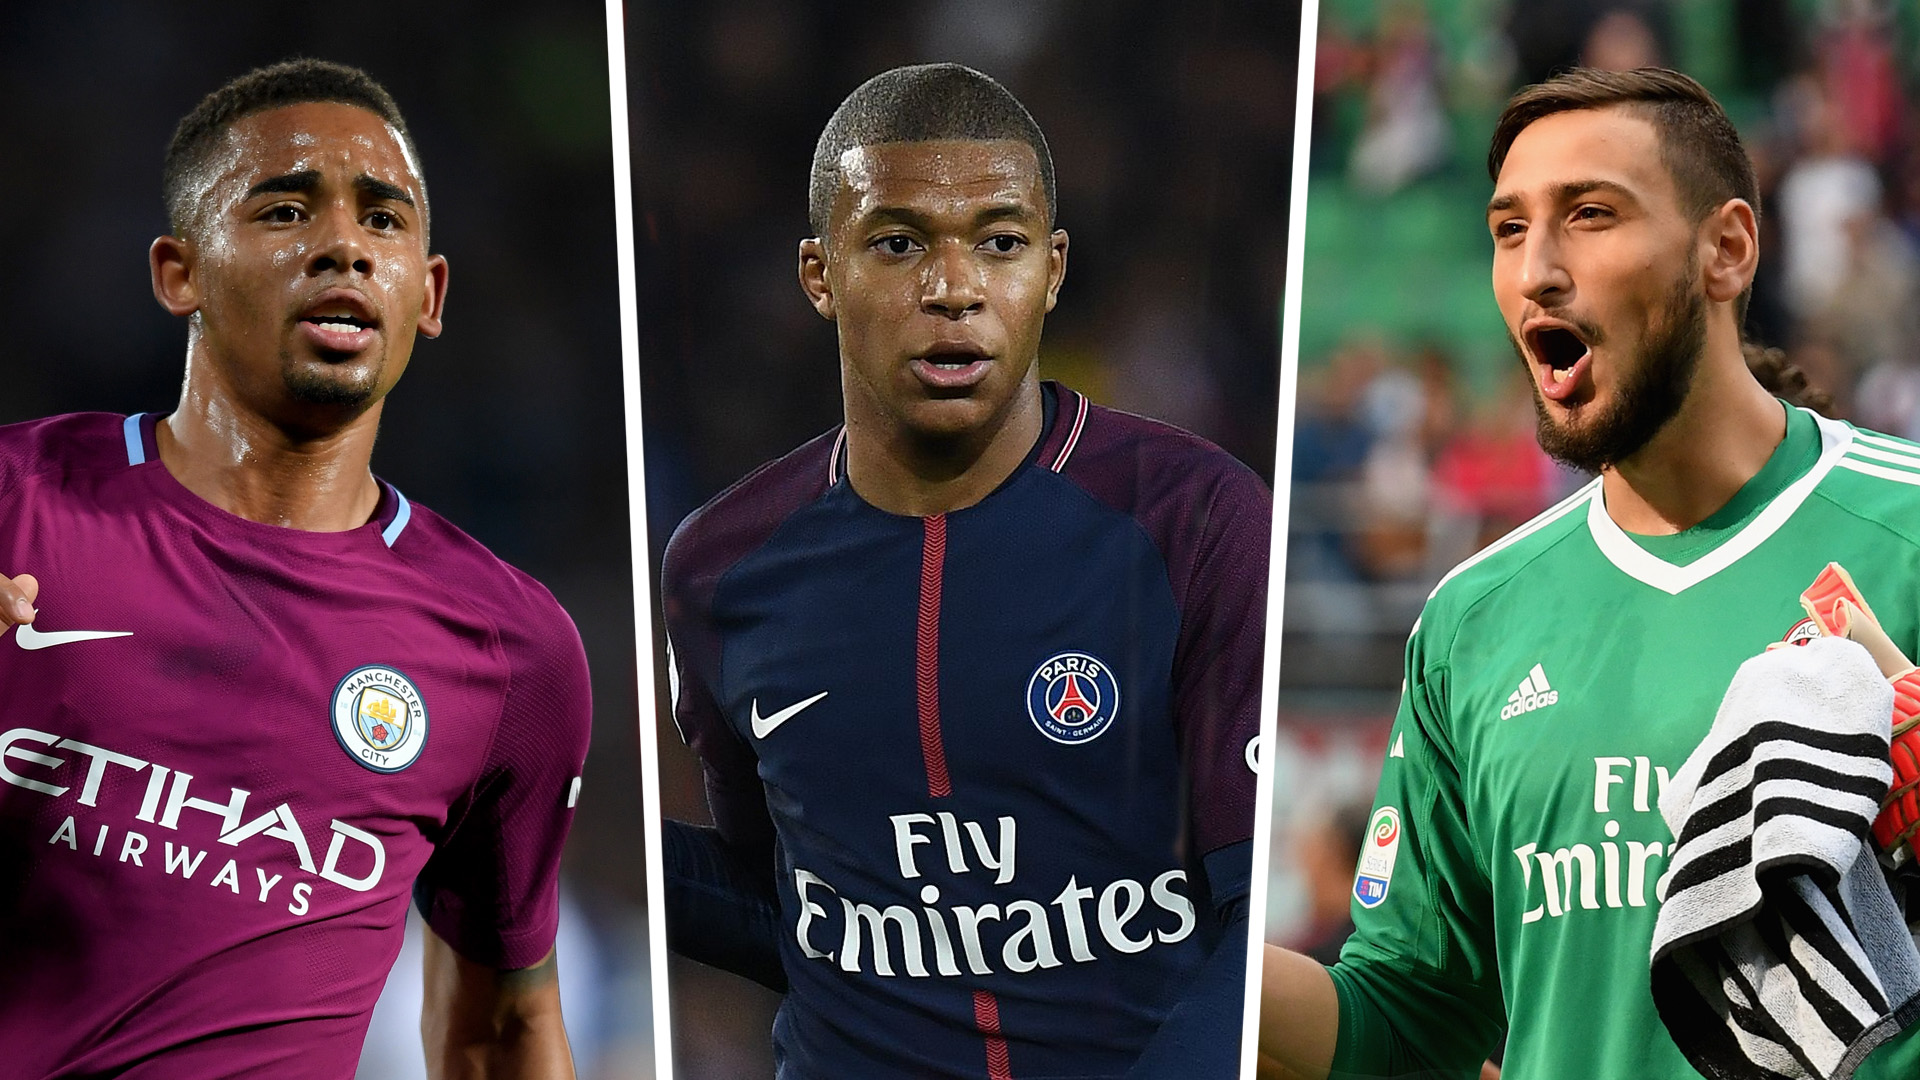 Fifa 18 very young players fifa 18 change resolution